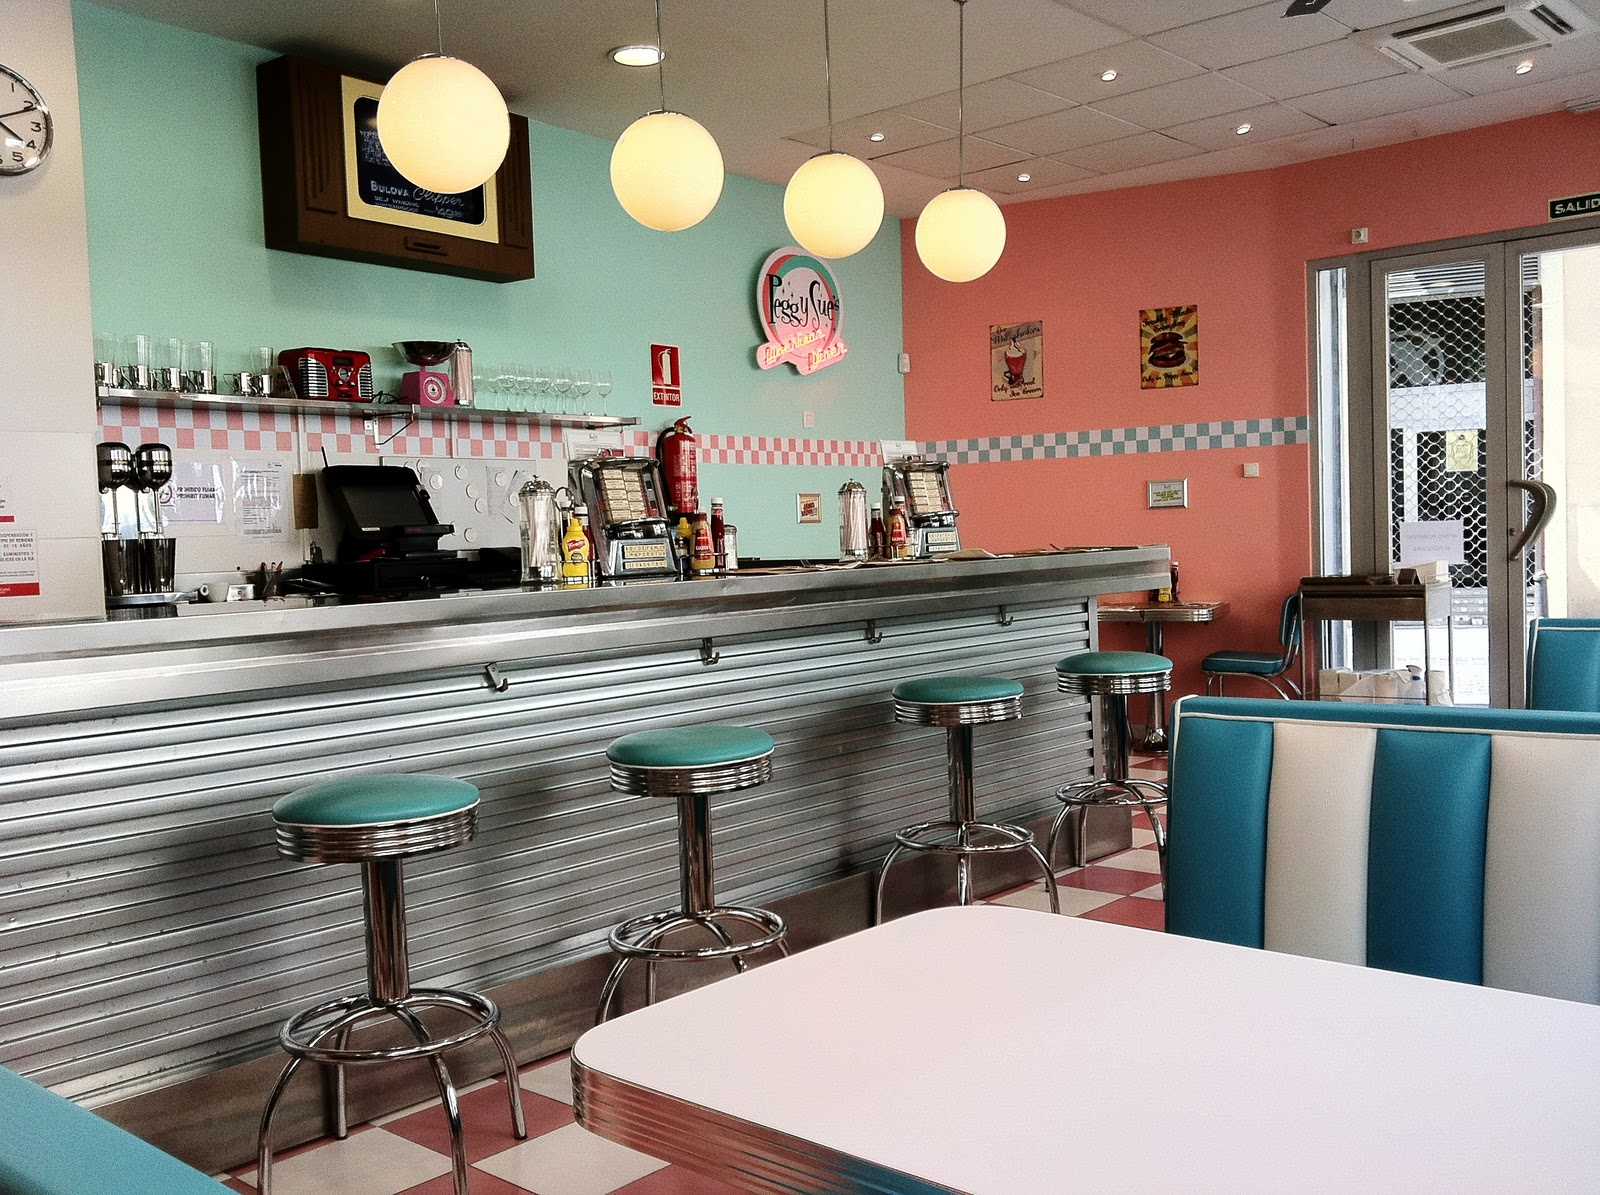 50 39 s american diner on pinterest diners 50s diner and retro for Decoration americaine annees 50